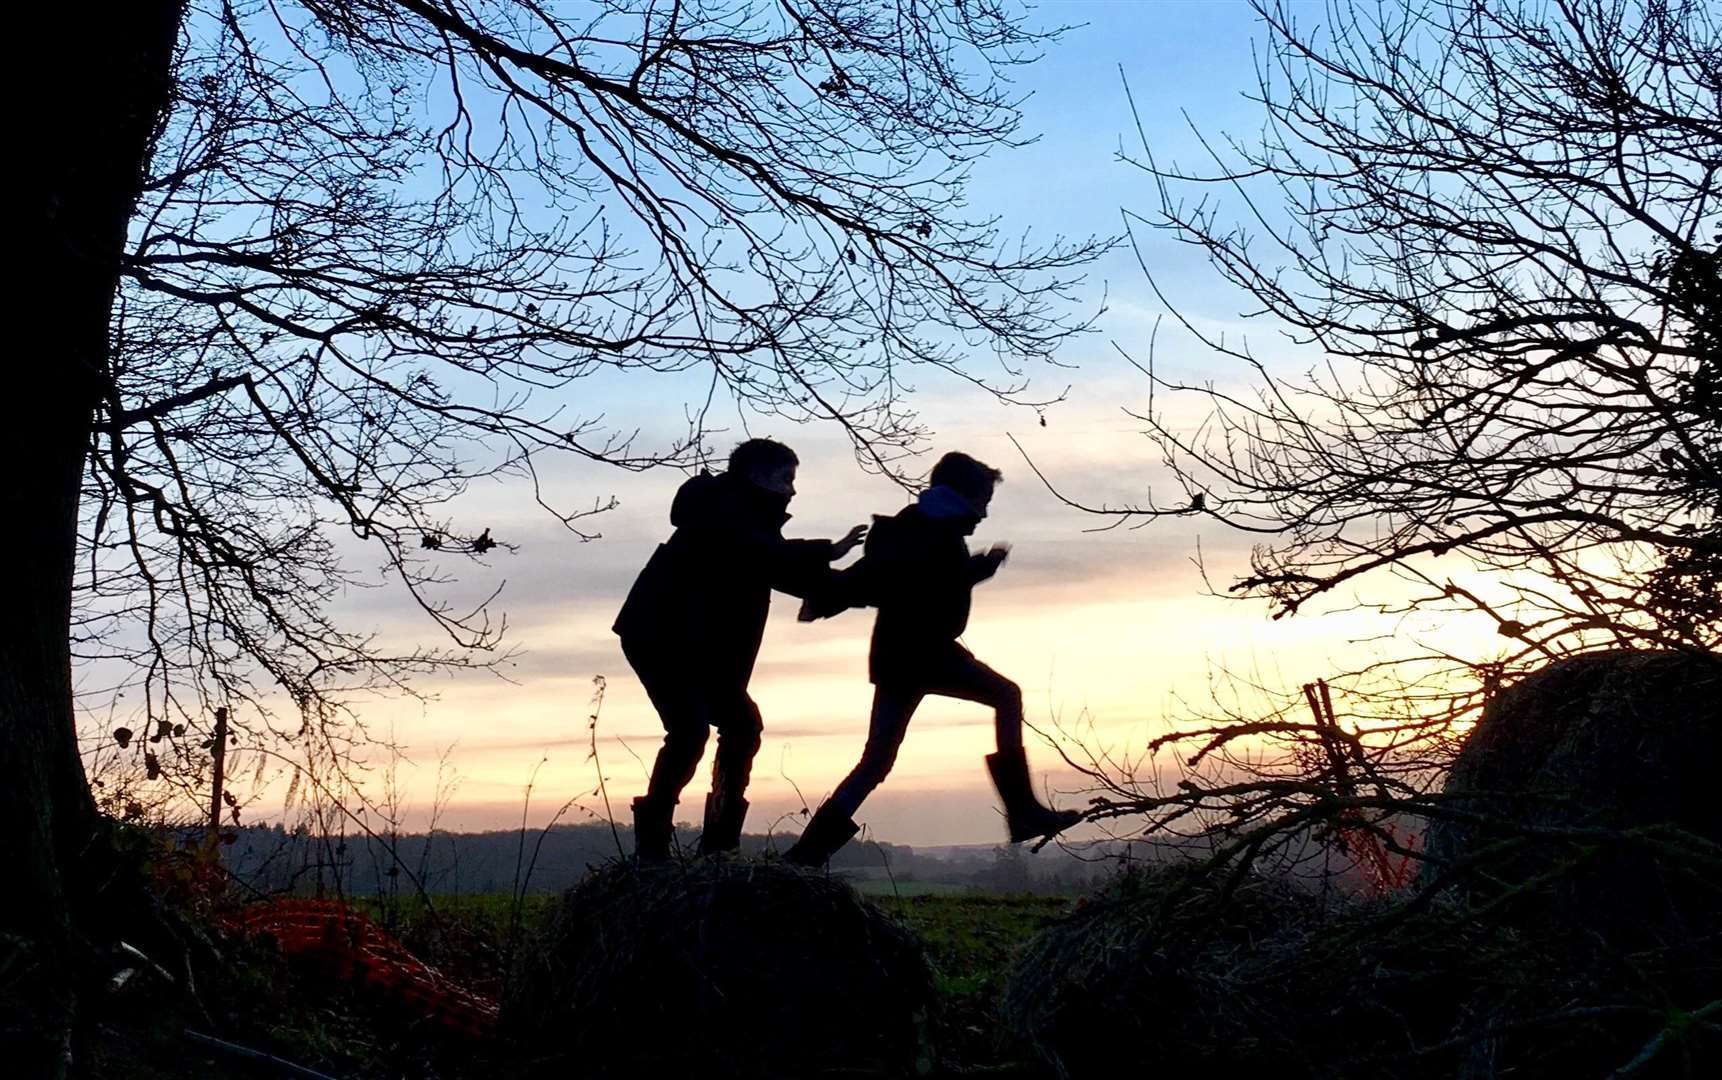 Victoria Harding took this eyecatching picture of her two boys playing in woods at Shepherd's Hill, Selling in January